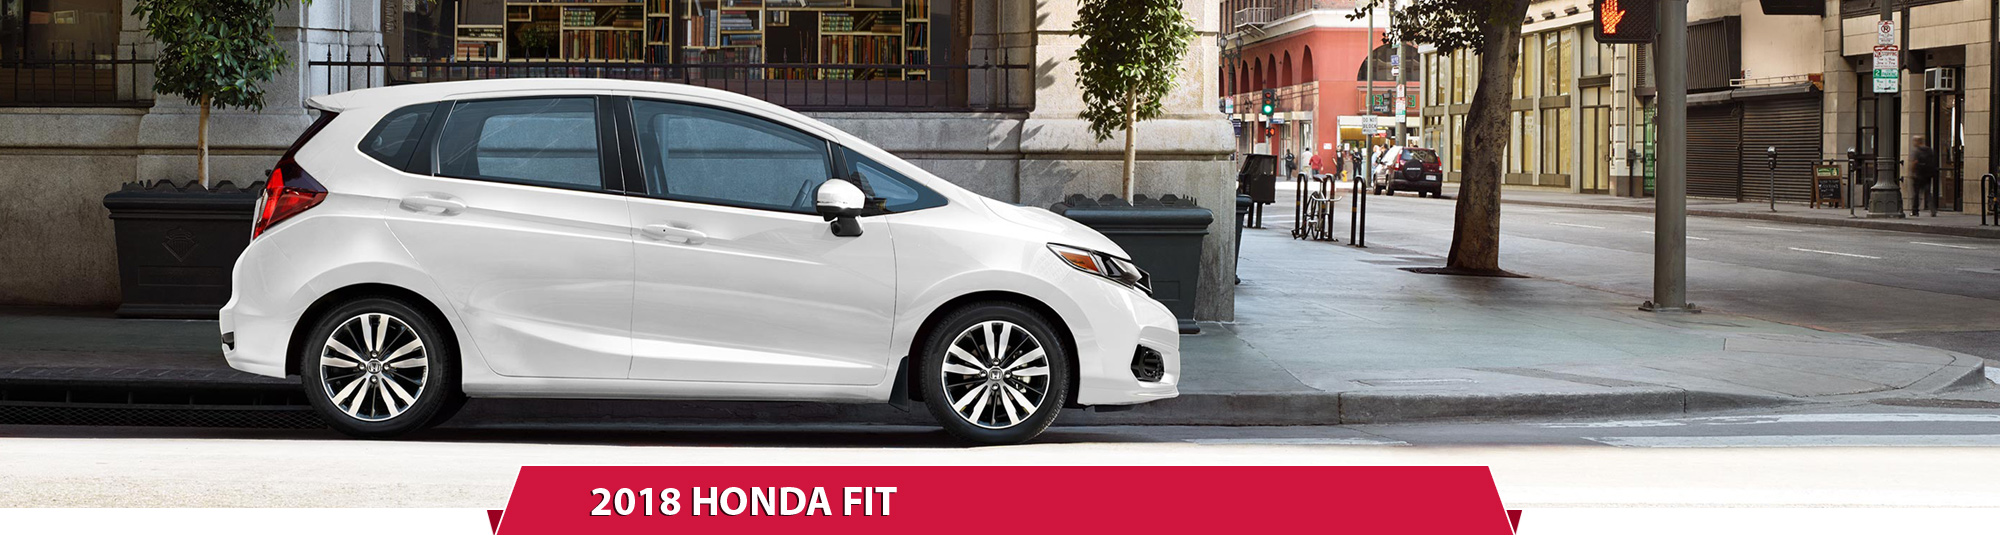 All The New 2018 Honda Fit